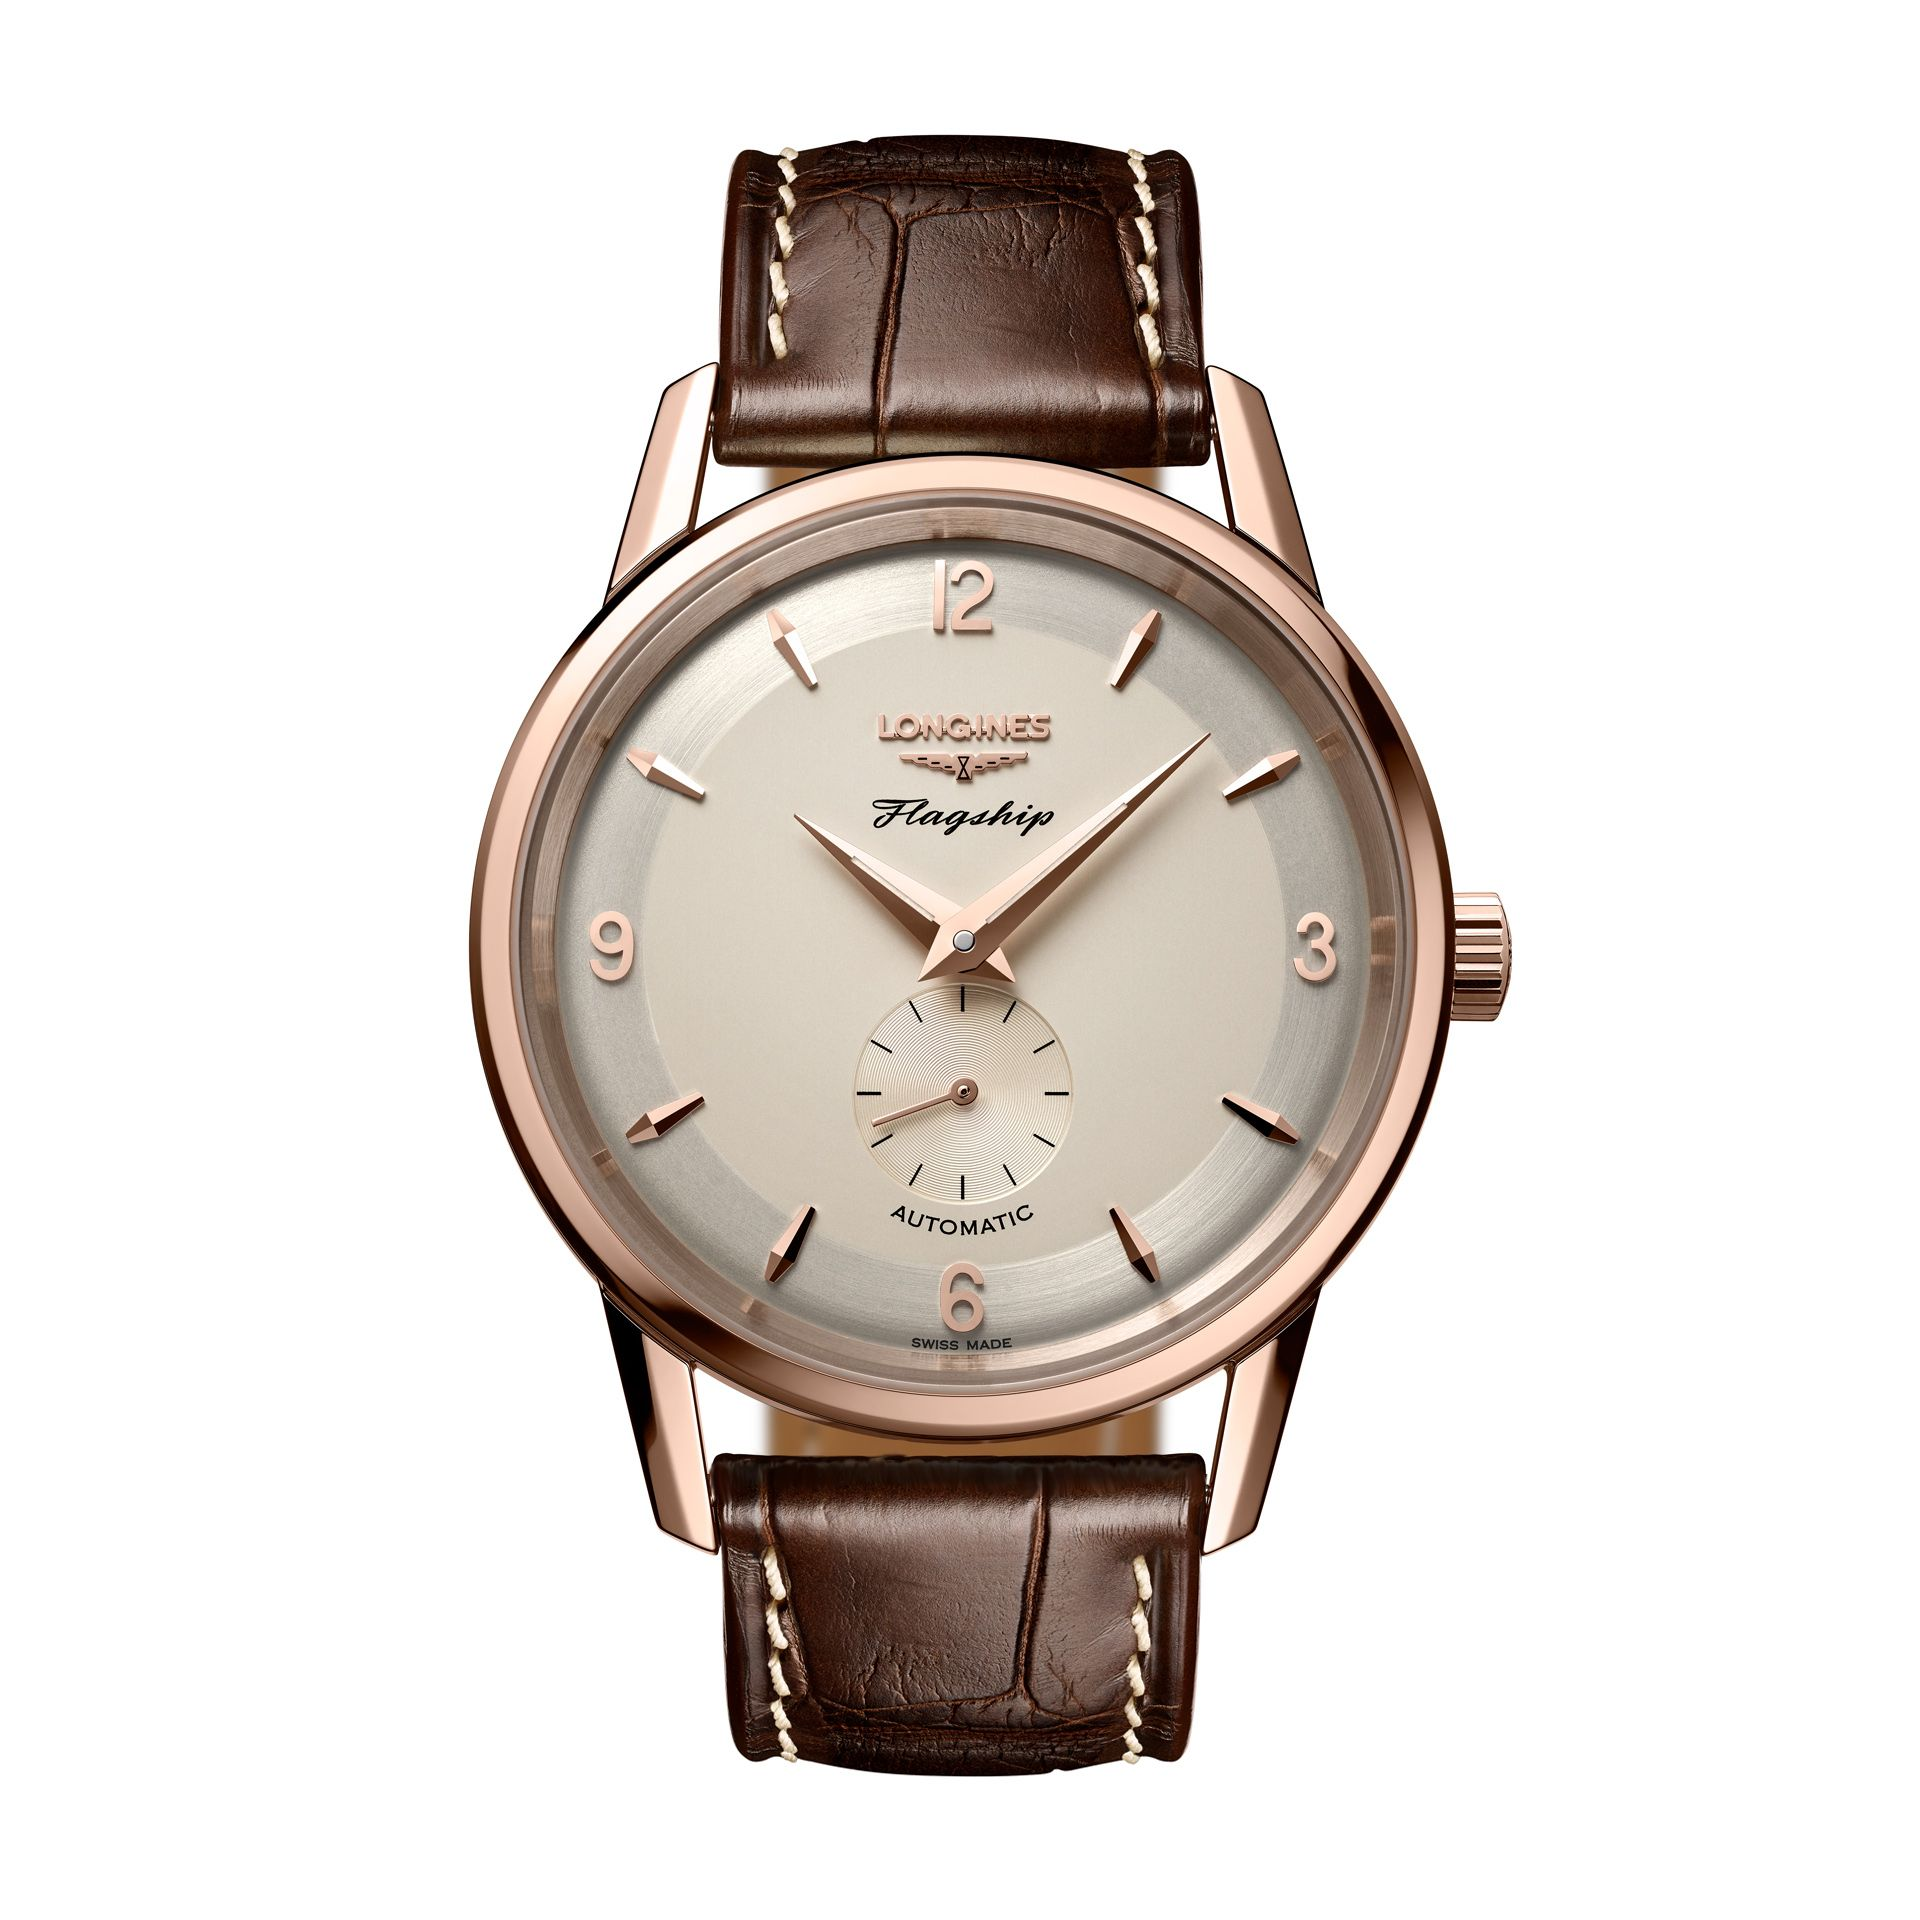 Longines Flagship Heritage 60th Anniversary 1957-2017 | #Longines | #38Mm, #39Mm, #Automatic, #Flagship, #MEN, #MovementLonginesL609, #PriceBetween1000And2500, #SwissMade https://www.yourwatchhub.com/longines/longines-flagship-heritage-60th-anniversary-1957-2017/